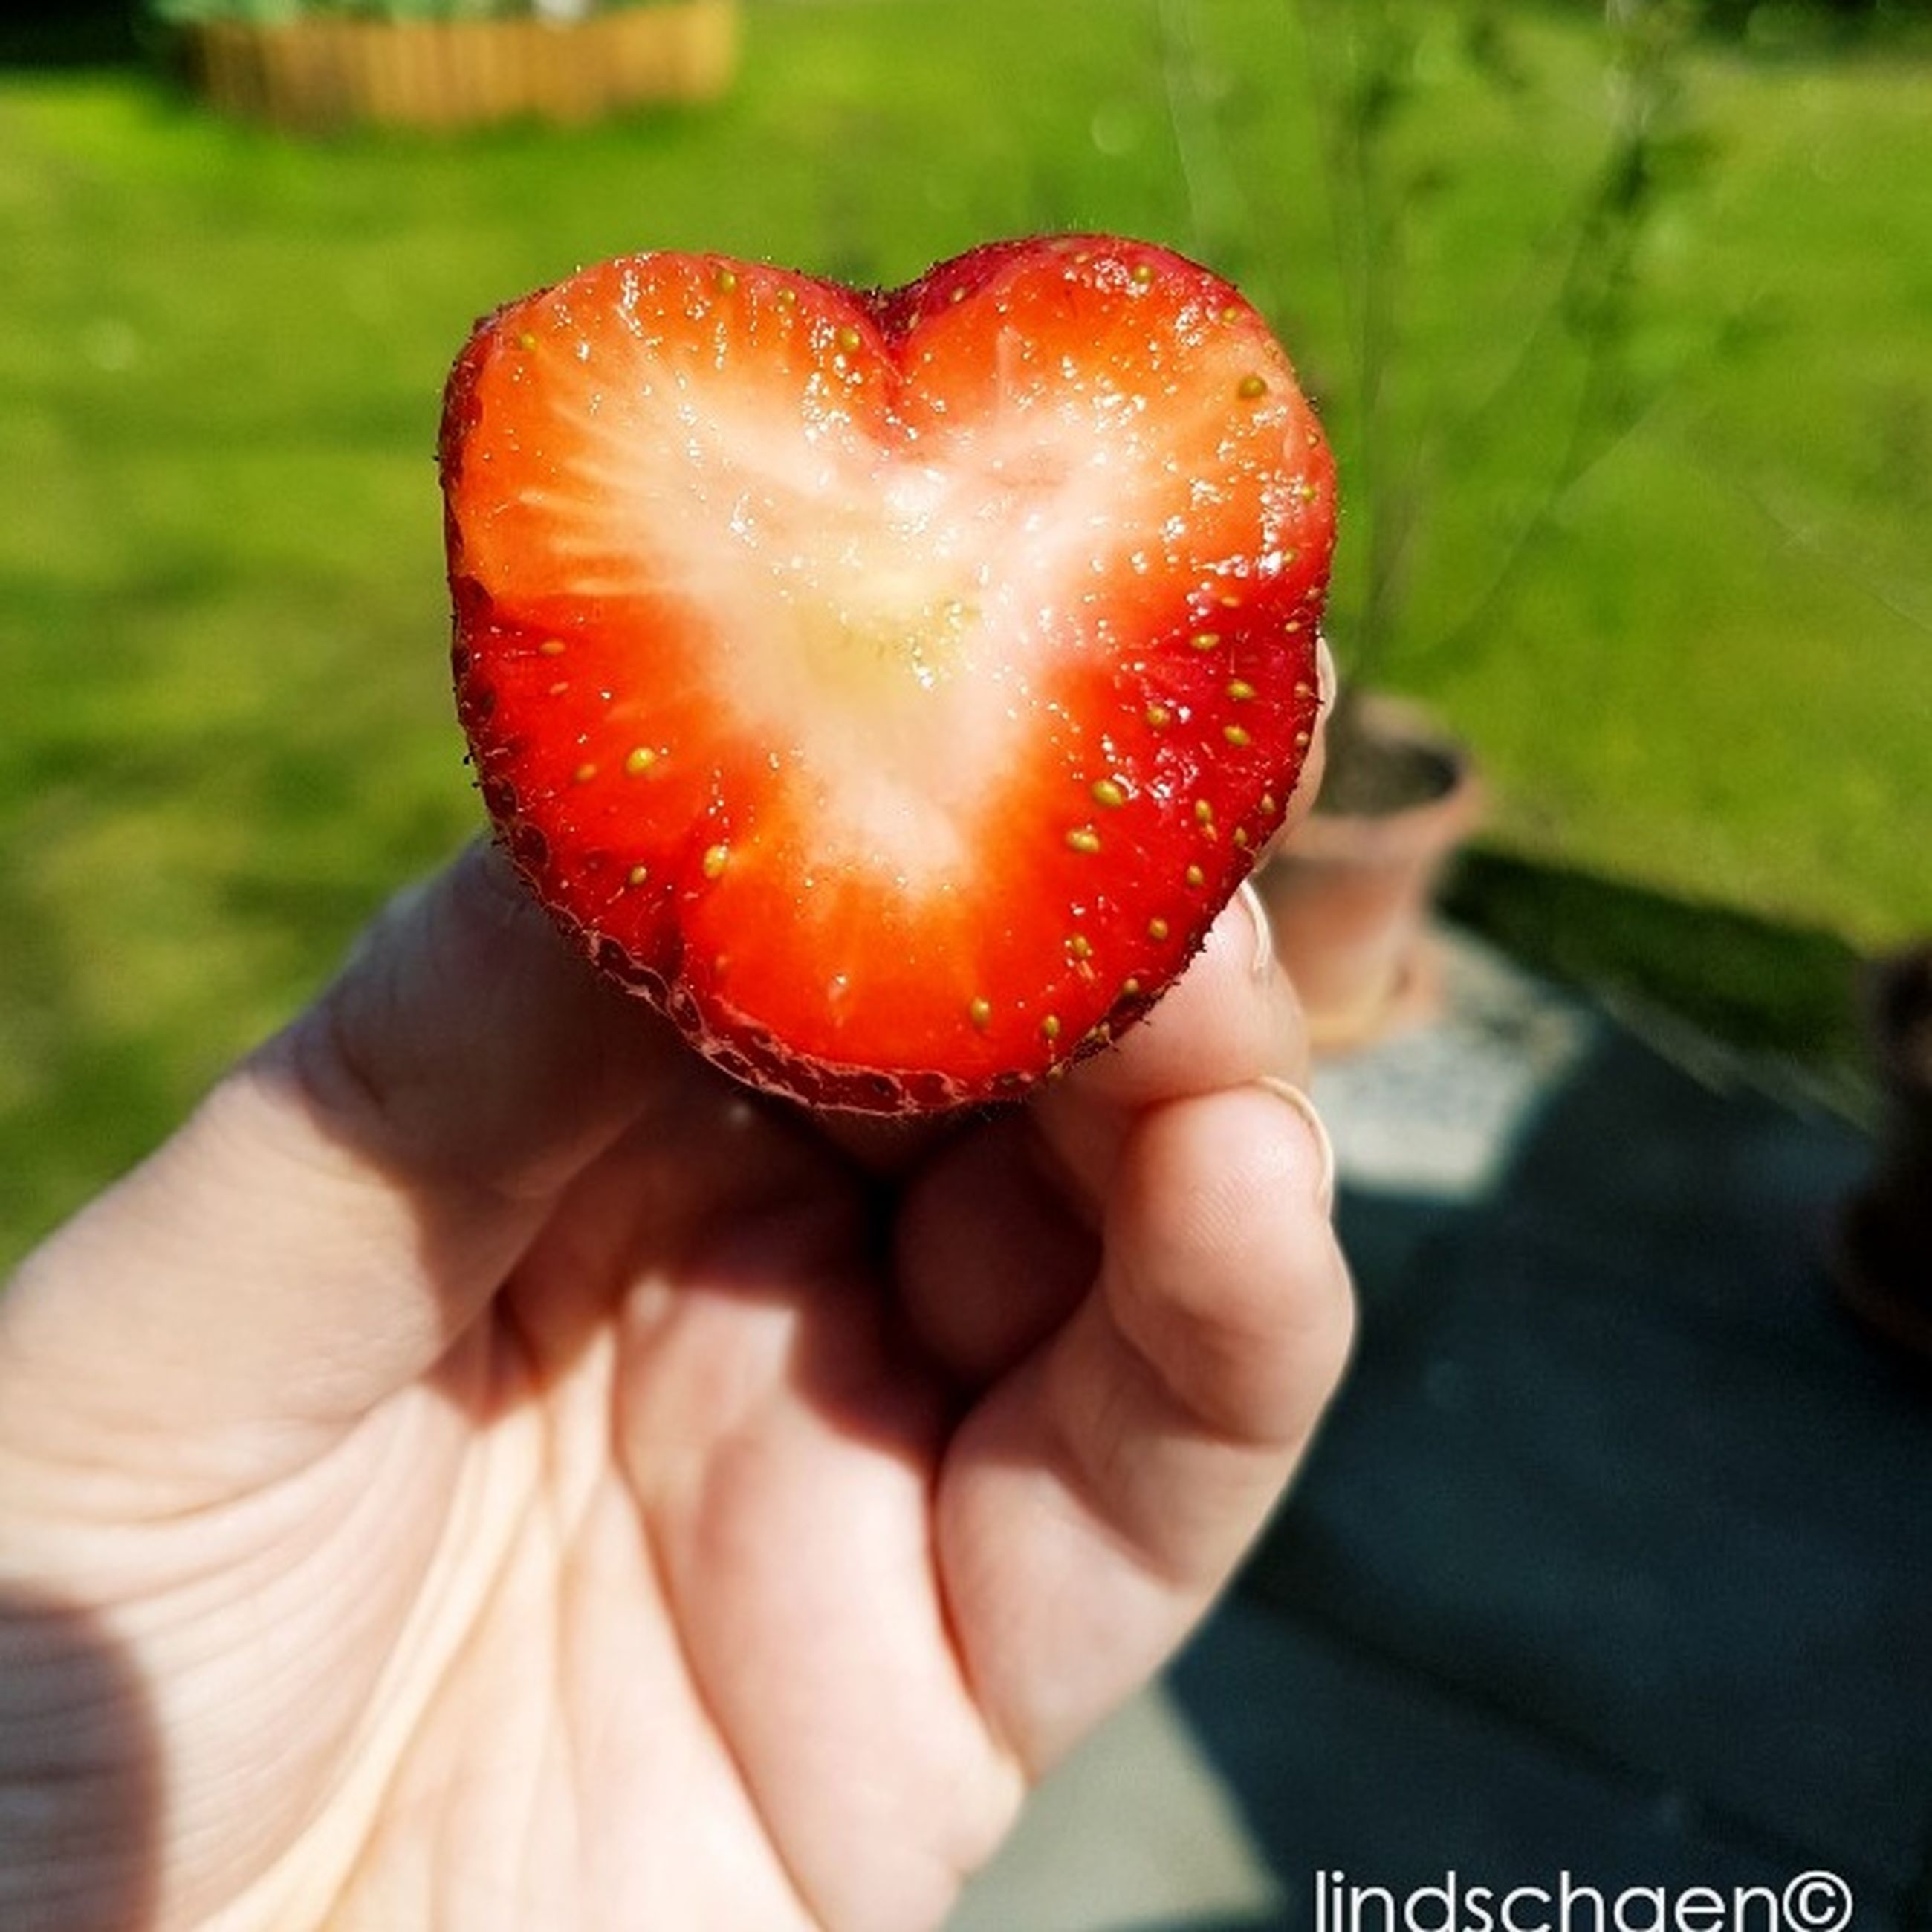 human hand, human body part, fruit, one person, real people, holding, human finger, red, food and drink, food, freshness, healthy eating, close-up, focus on foreground, lifestyles, outdoors, day, men, nature, people